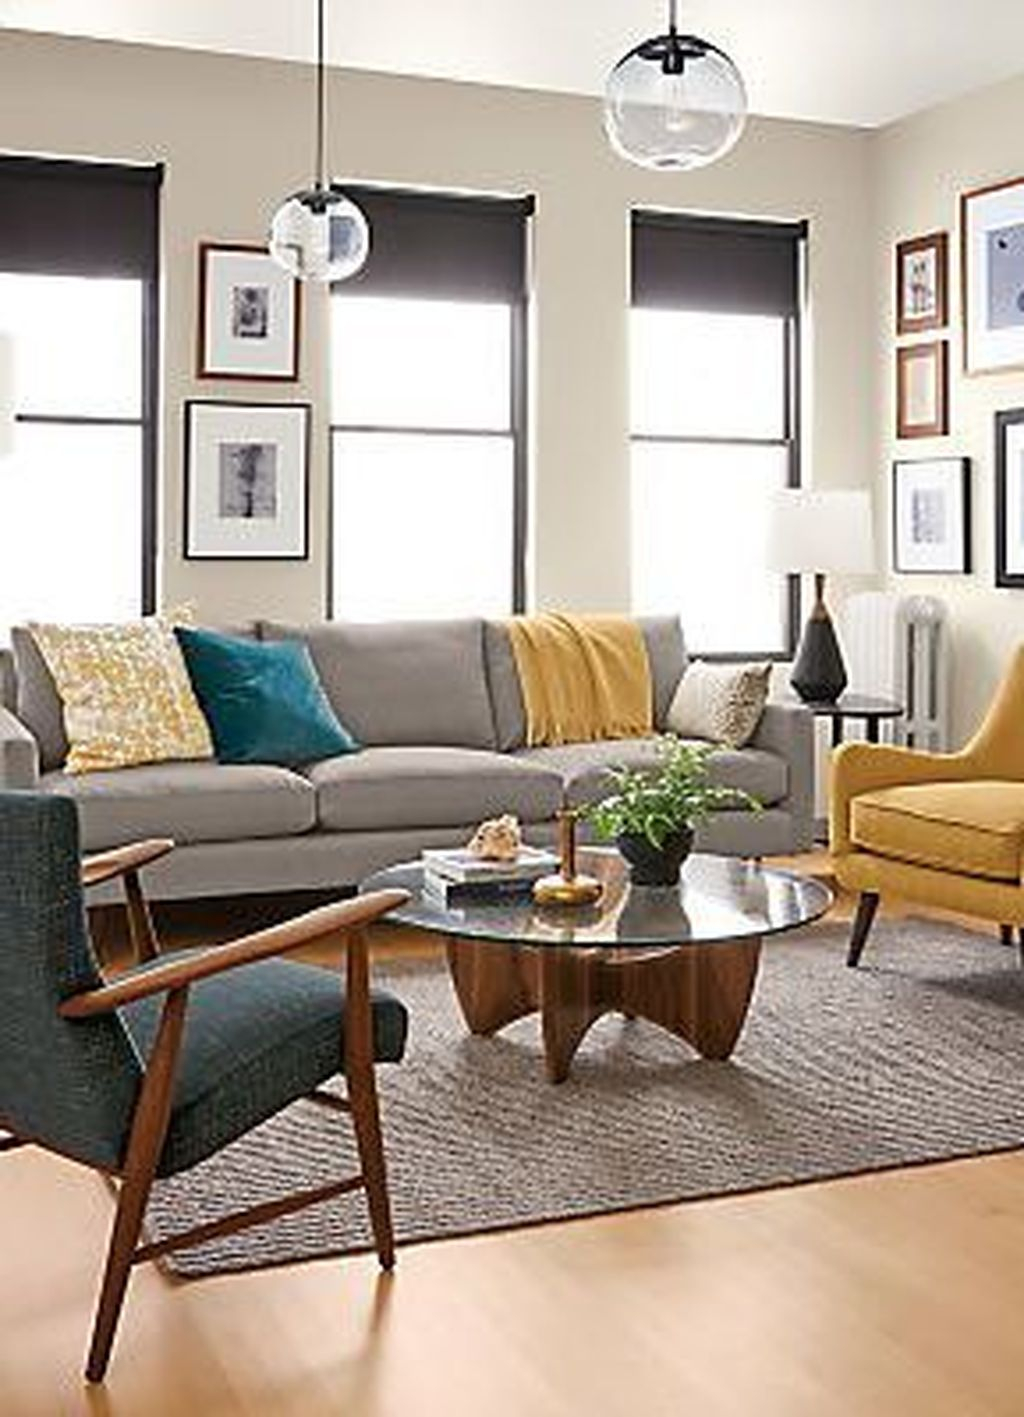 48 Graceful Living Room Design Ideas That You Need To Try